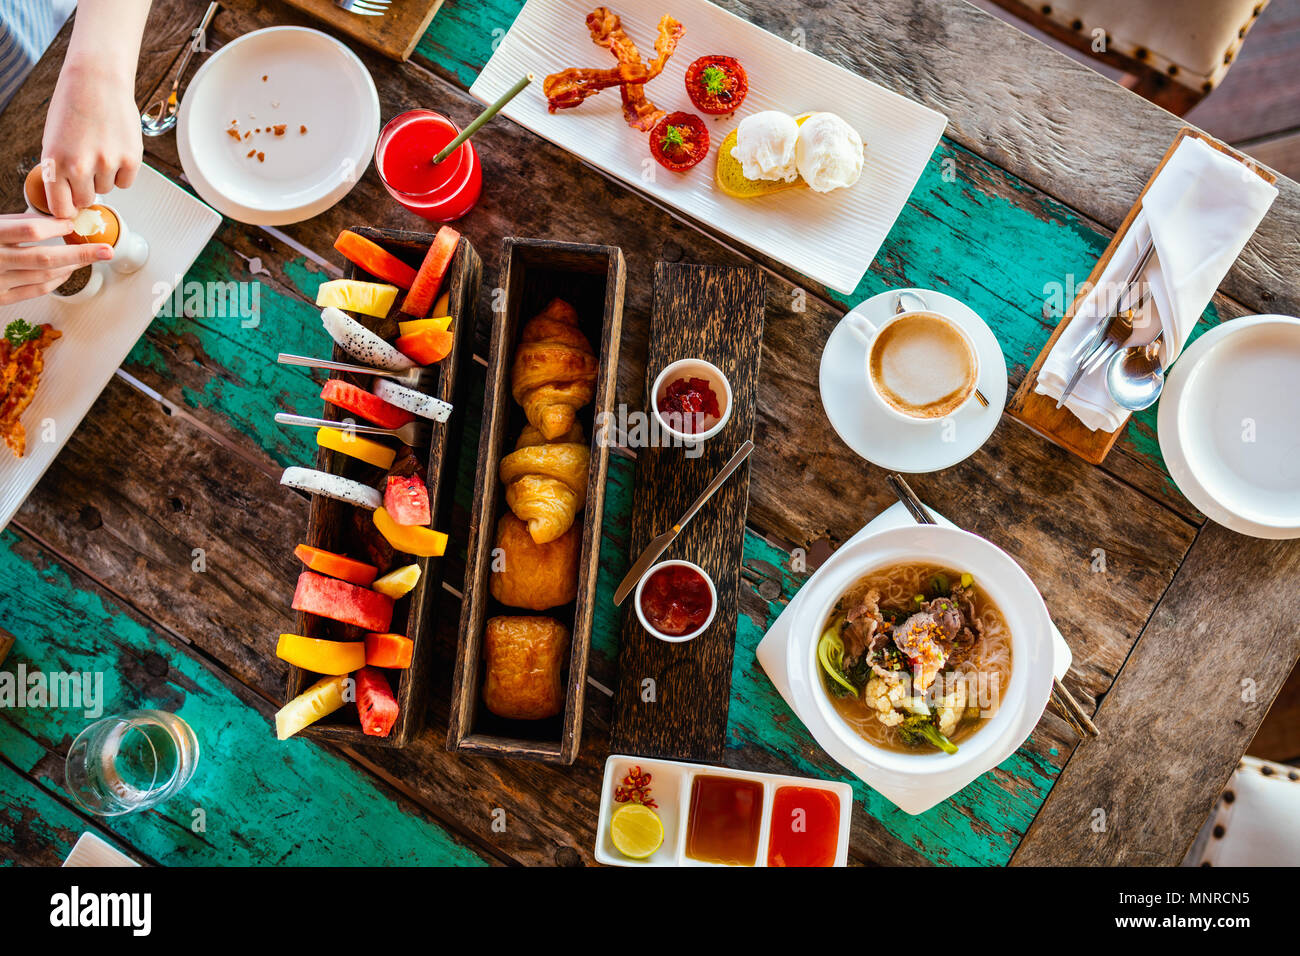 Top view of delicious organic food served for breakfast on rustic wooden table. Coffee,  eggs,  fruits,  juice,  croissants and jam. - Stock Image